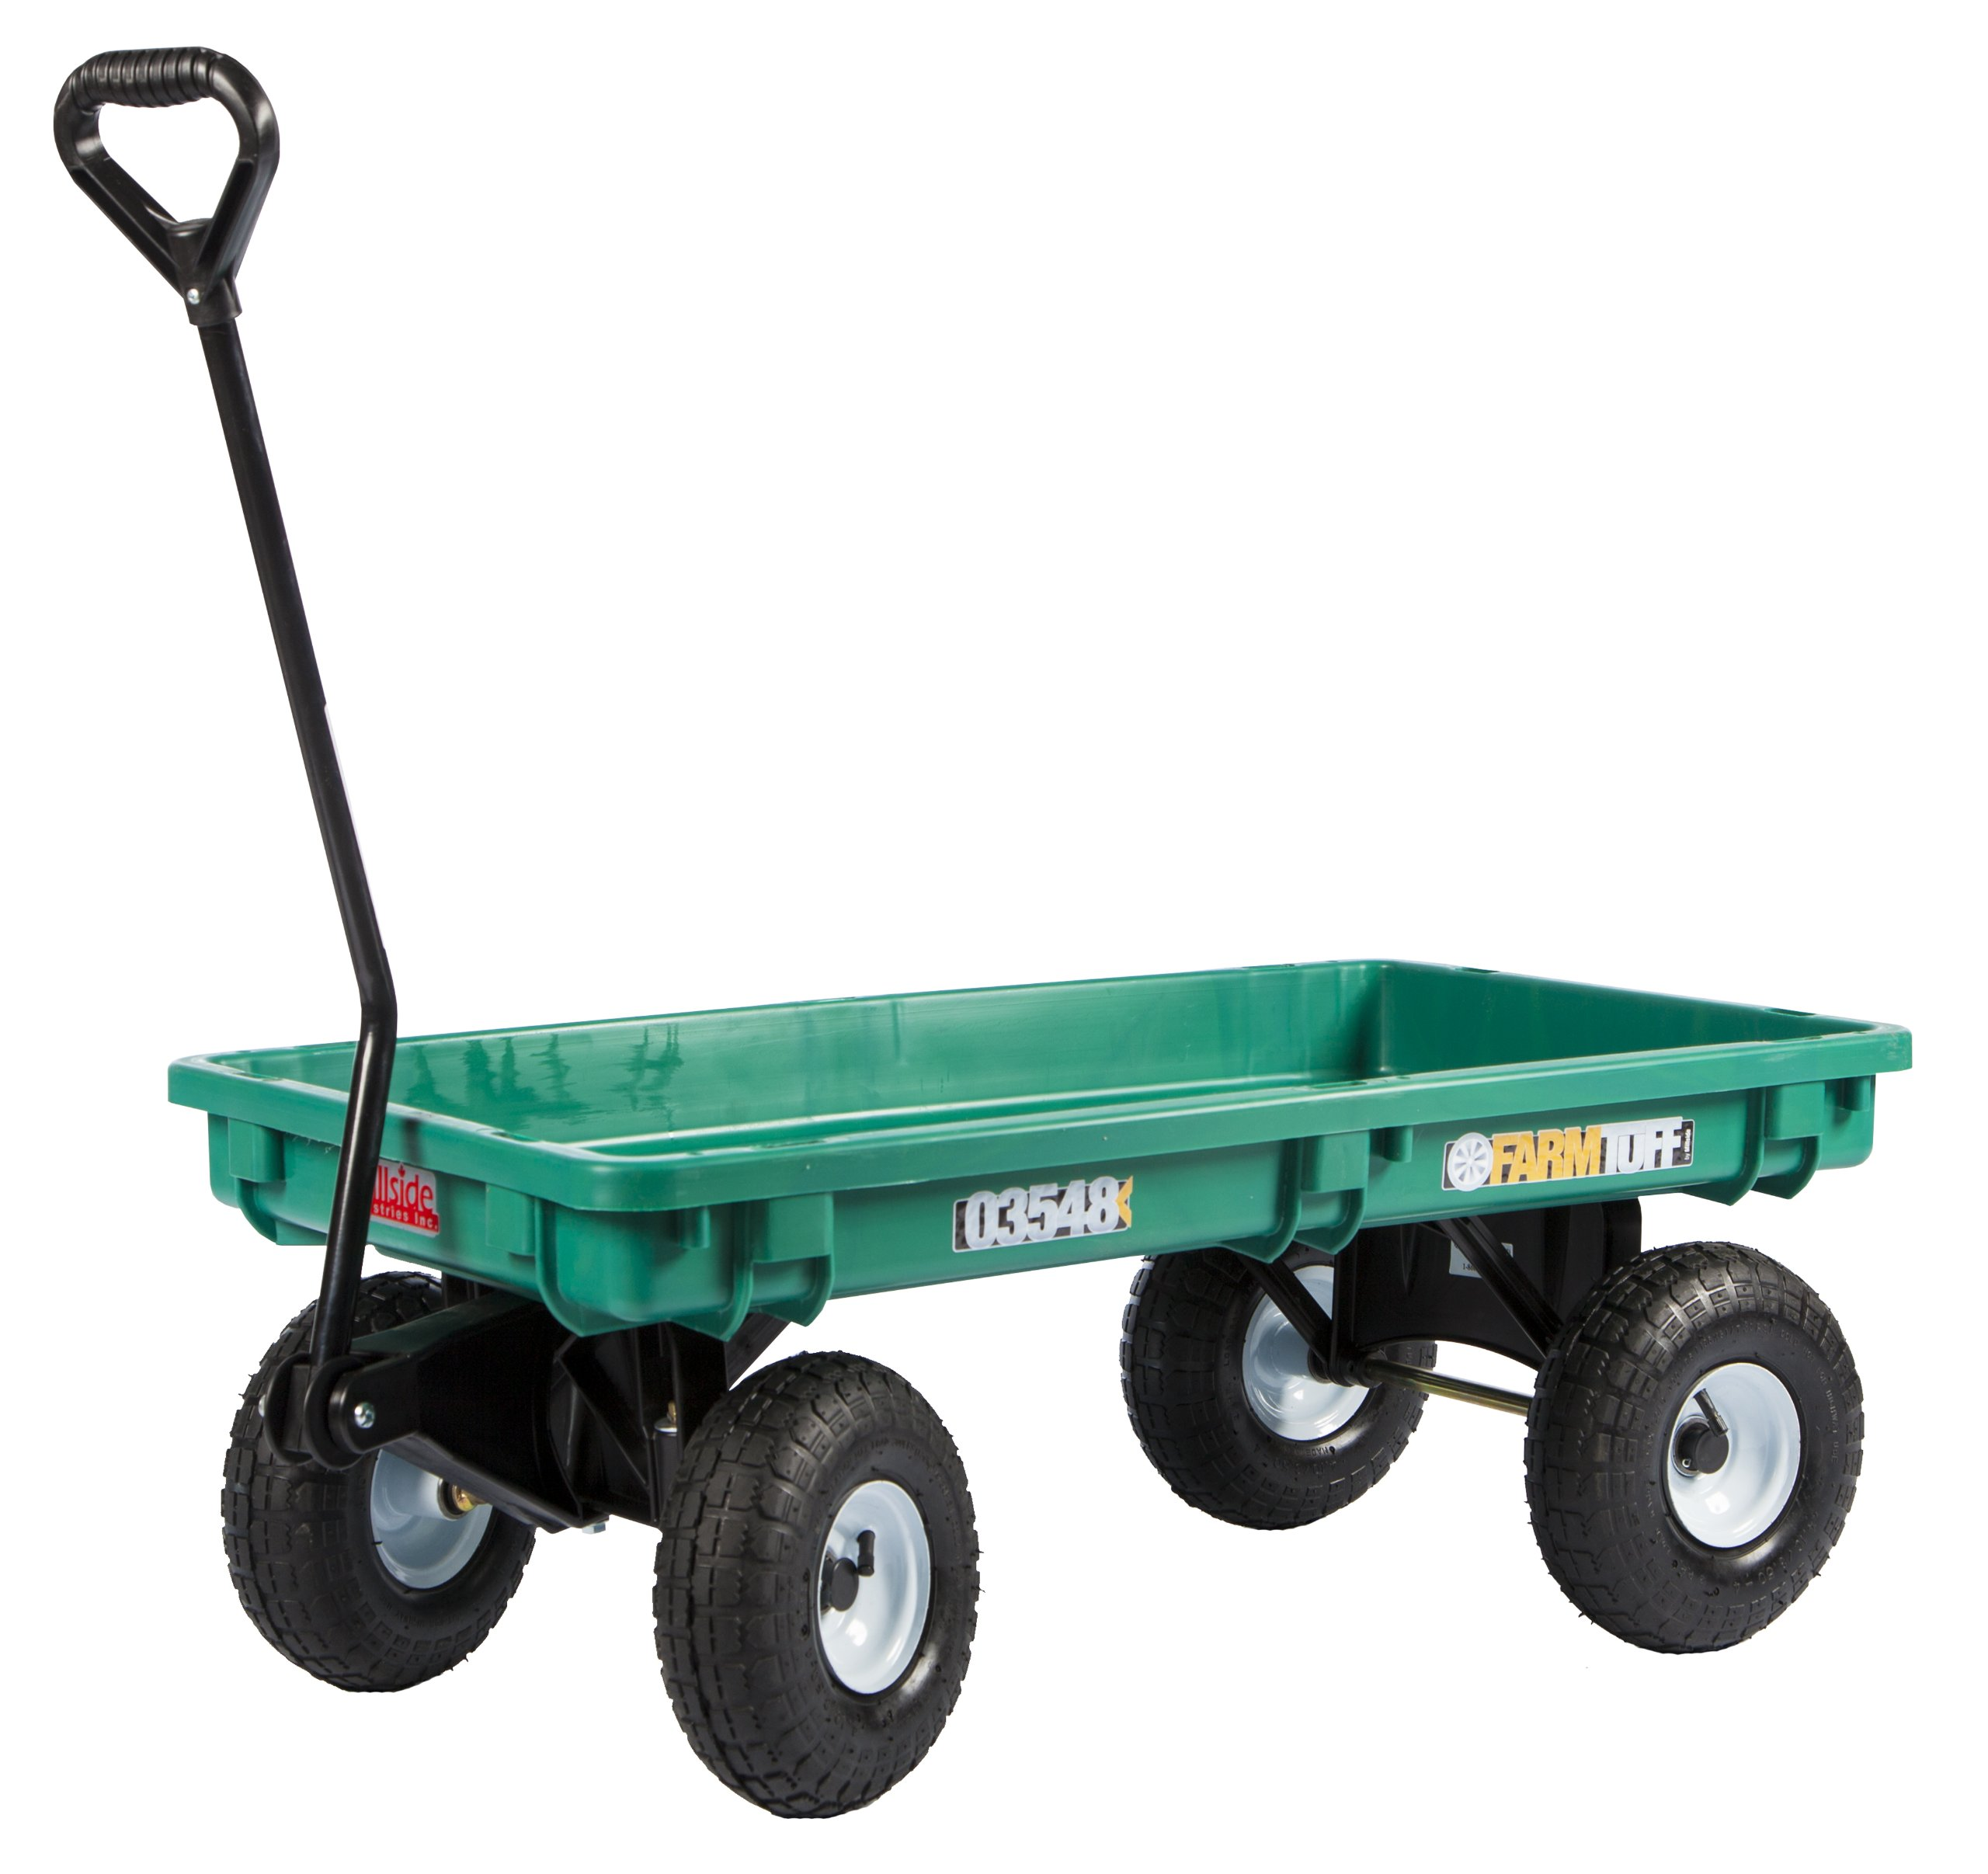 Farm Tuff 03548 Plastic Deck Wagon, 20-Inch by 38-Inch, Green by Farm Tuff